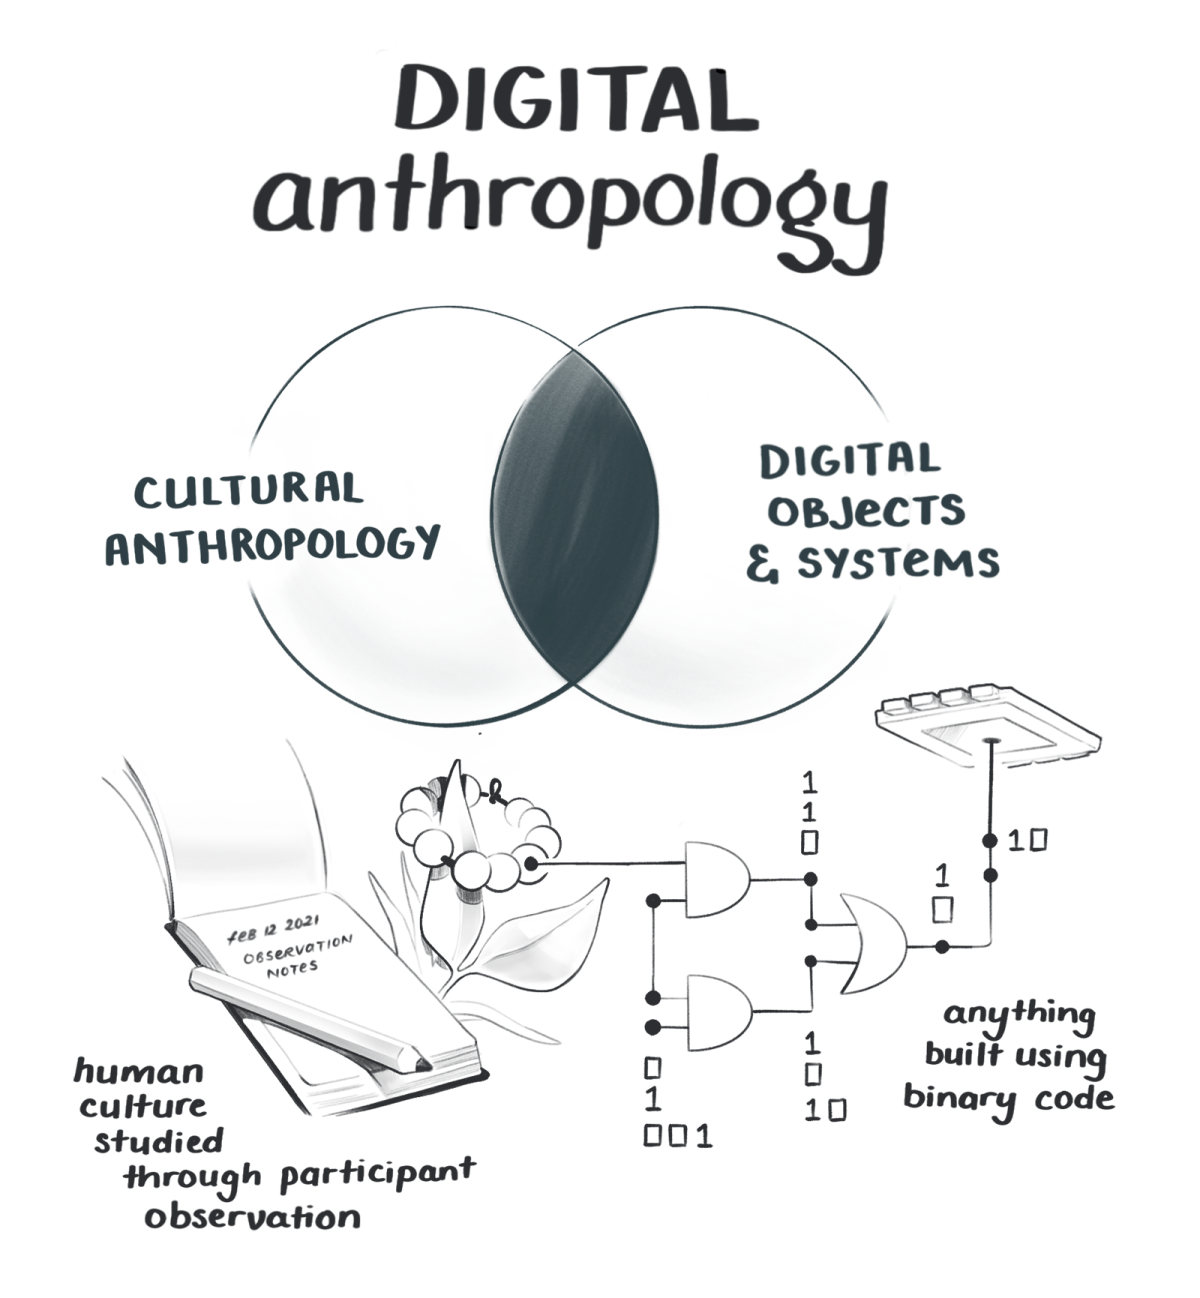 A venn diagram showing the intersection of anthropology and digital systems